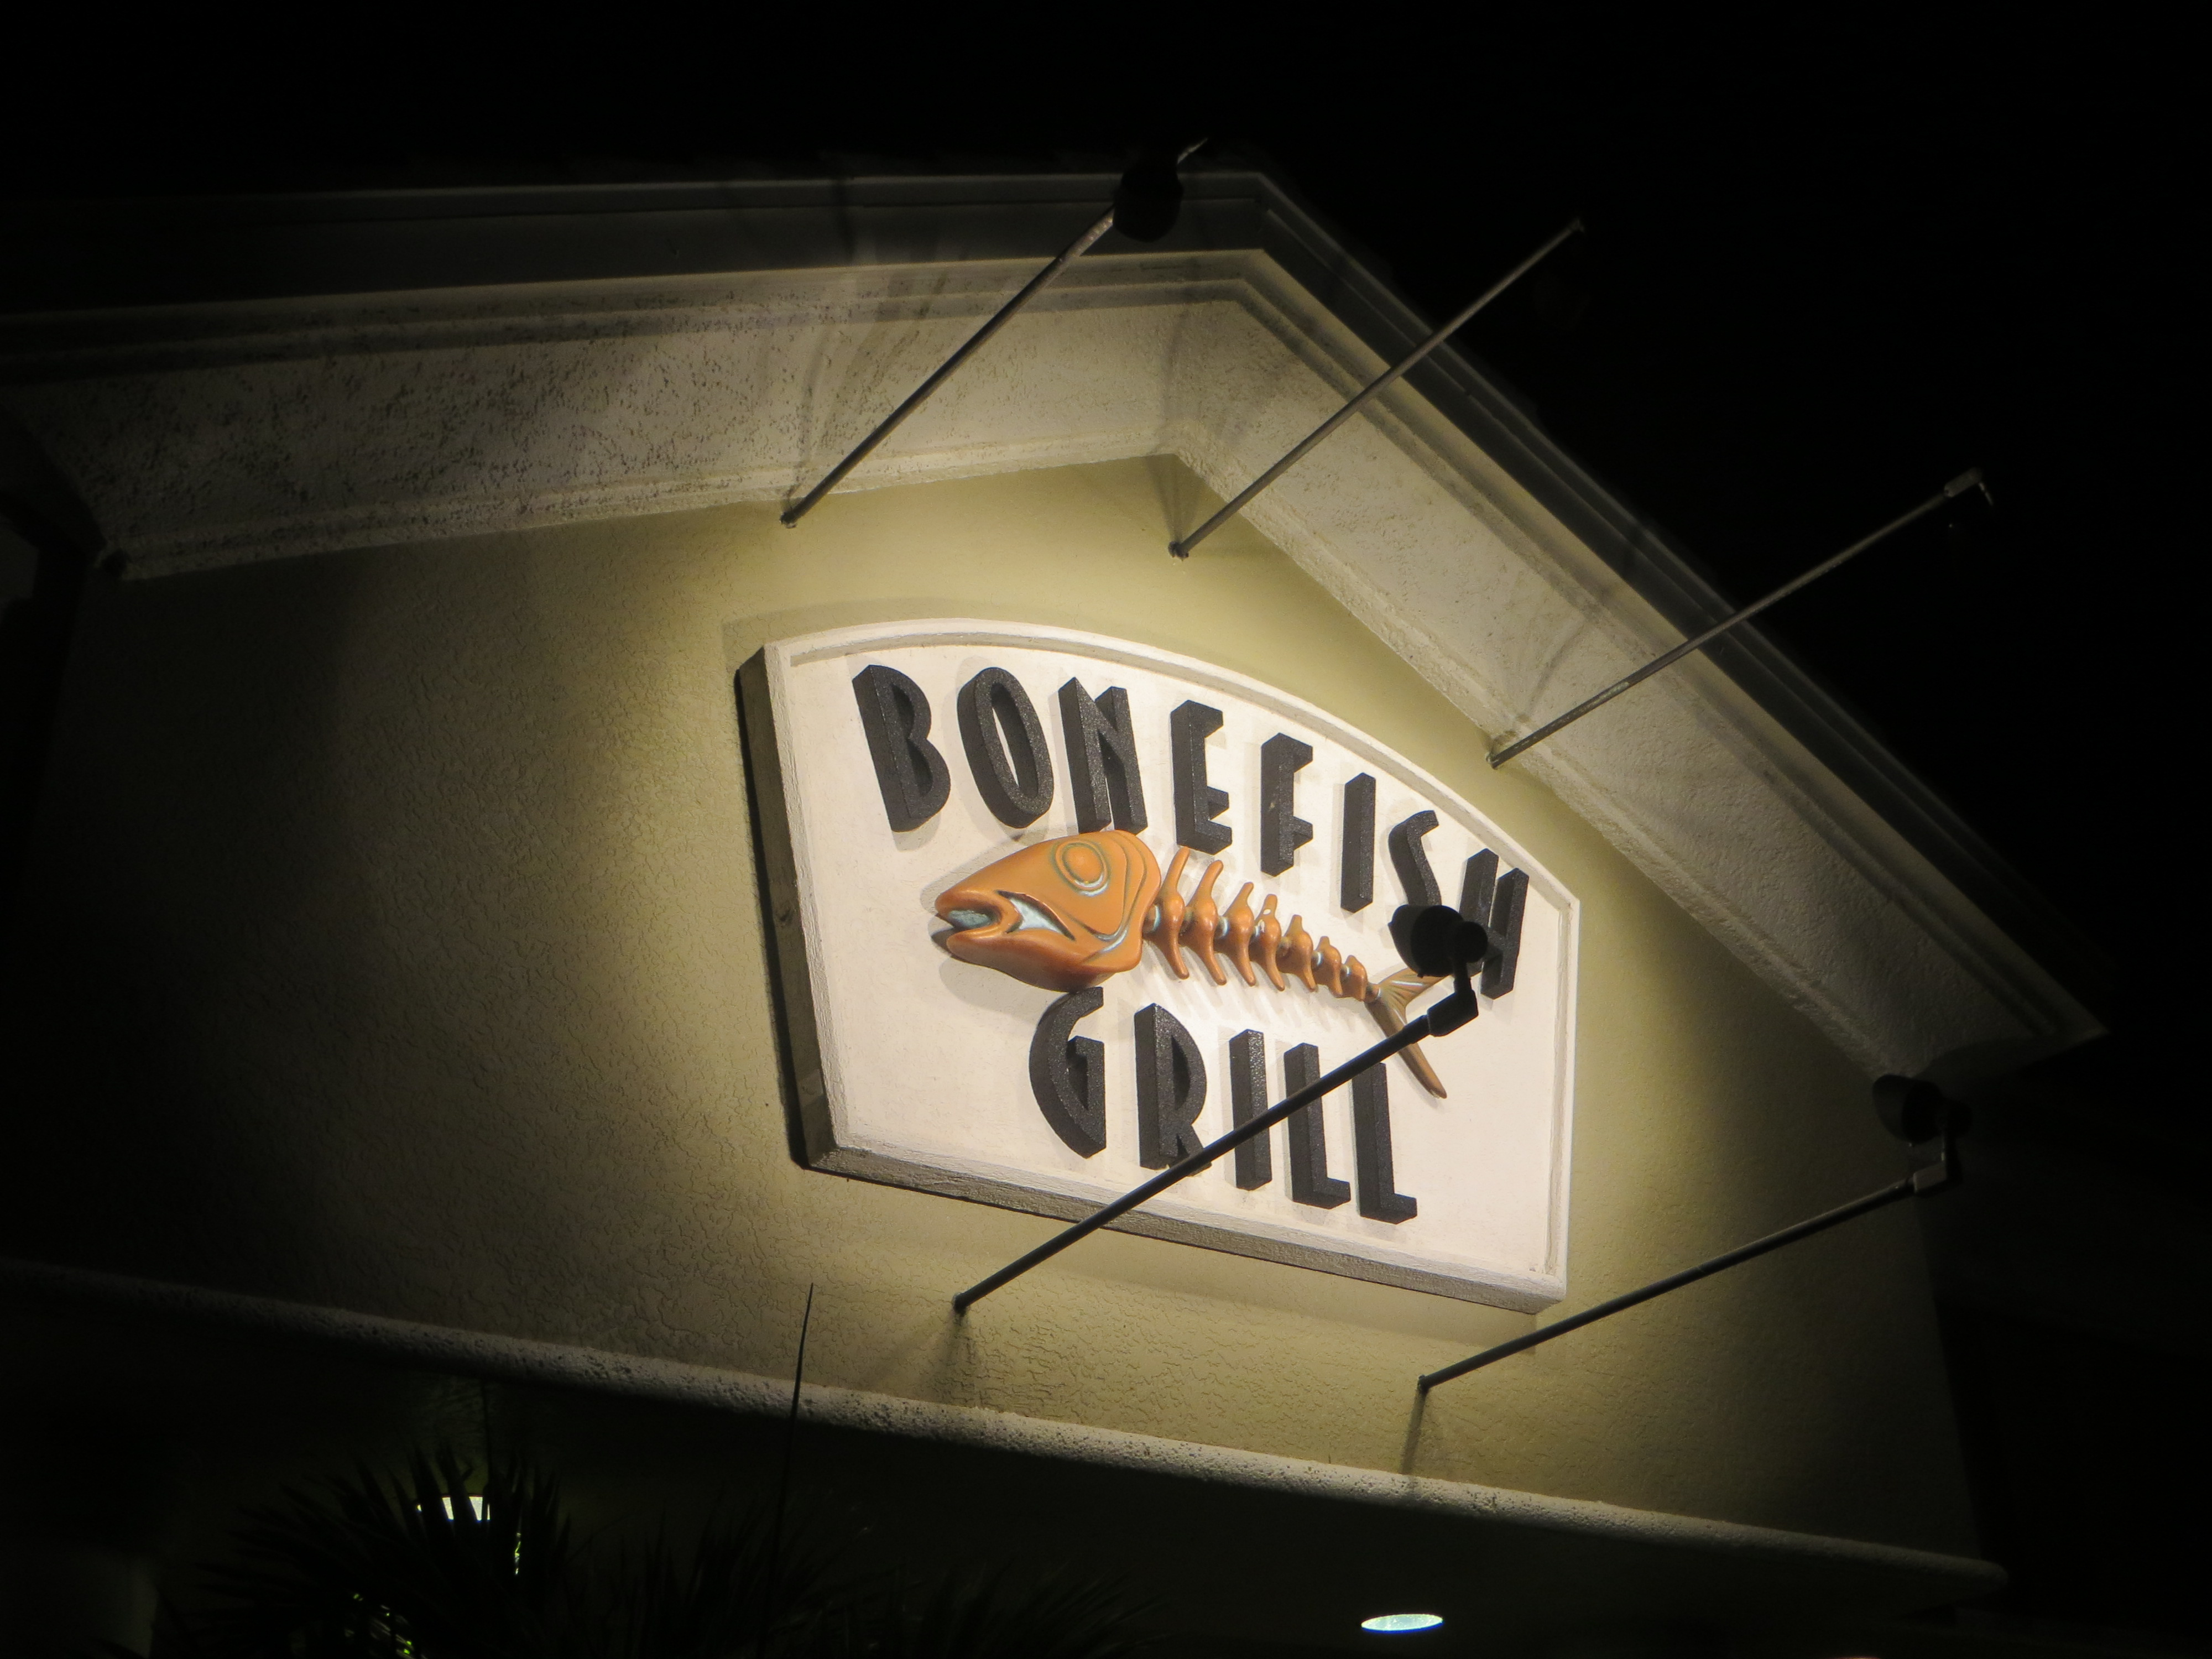 Der Bonefisch Grill in Bonita Springs